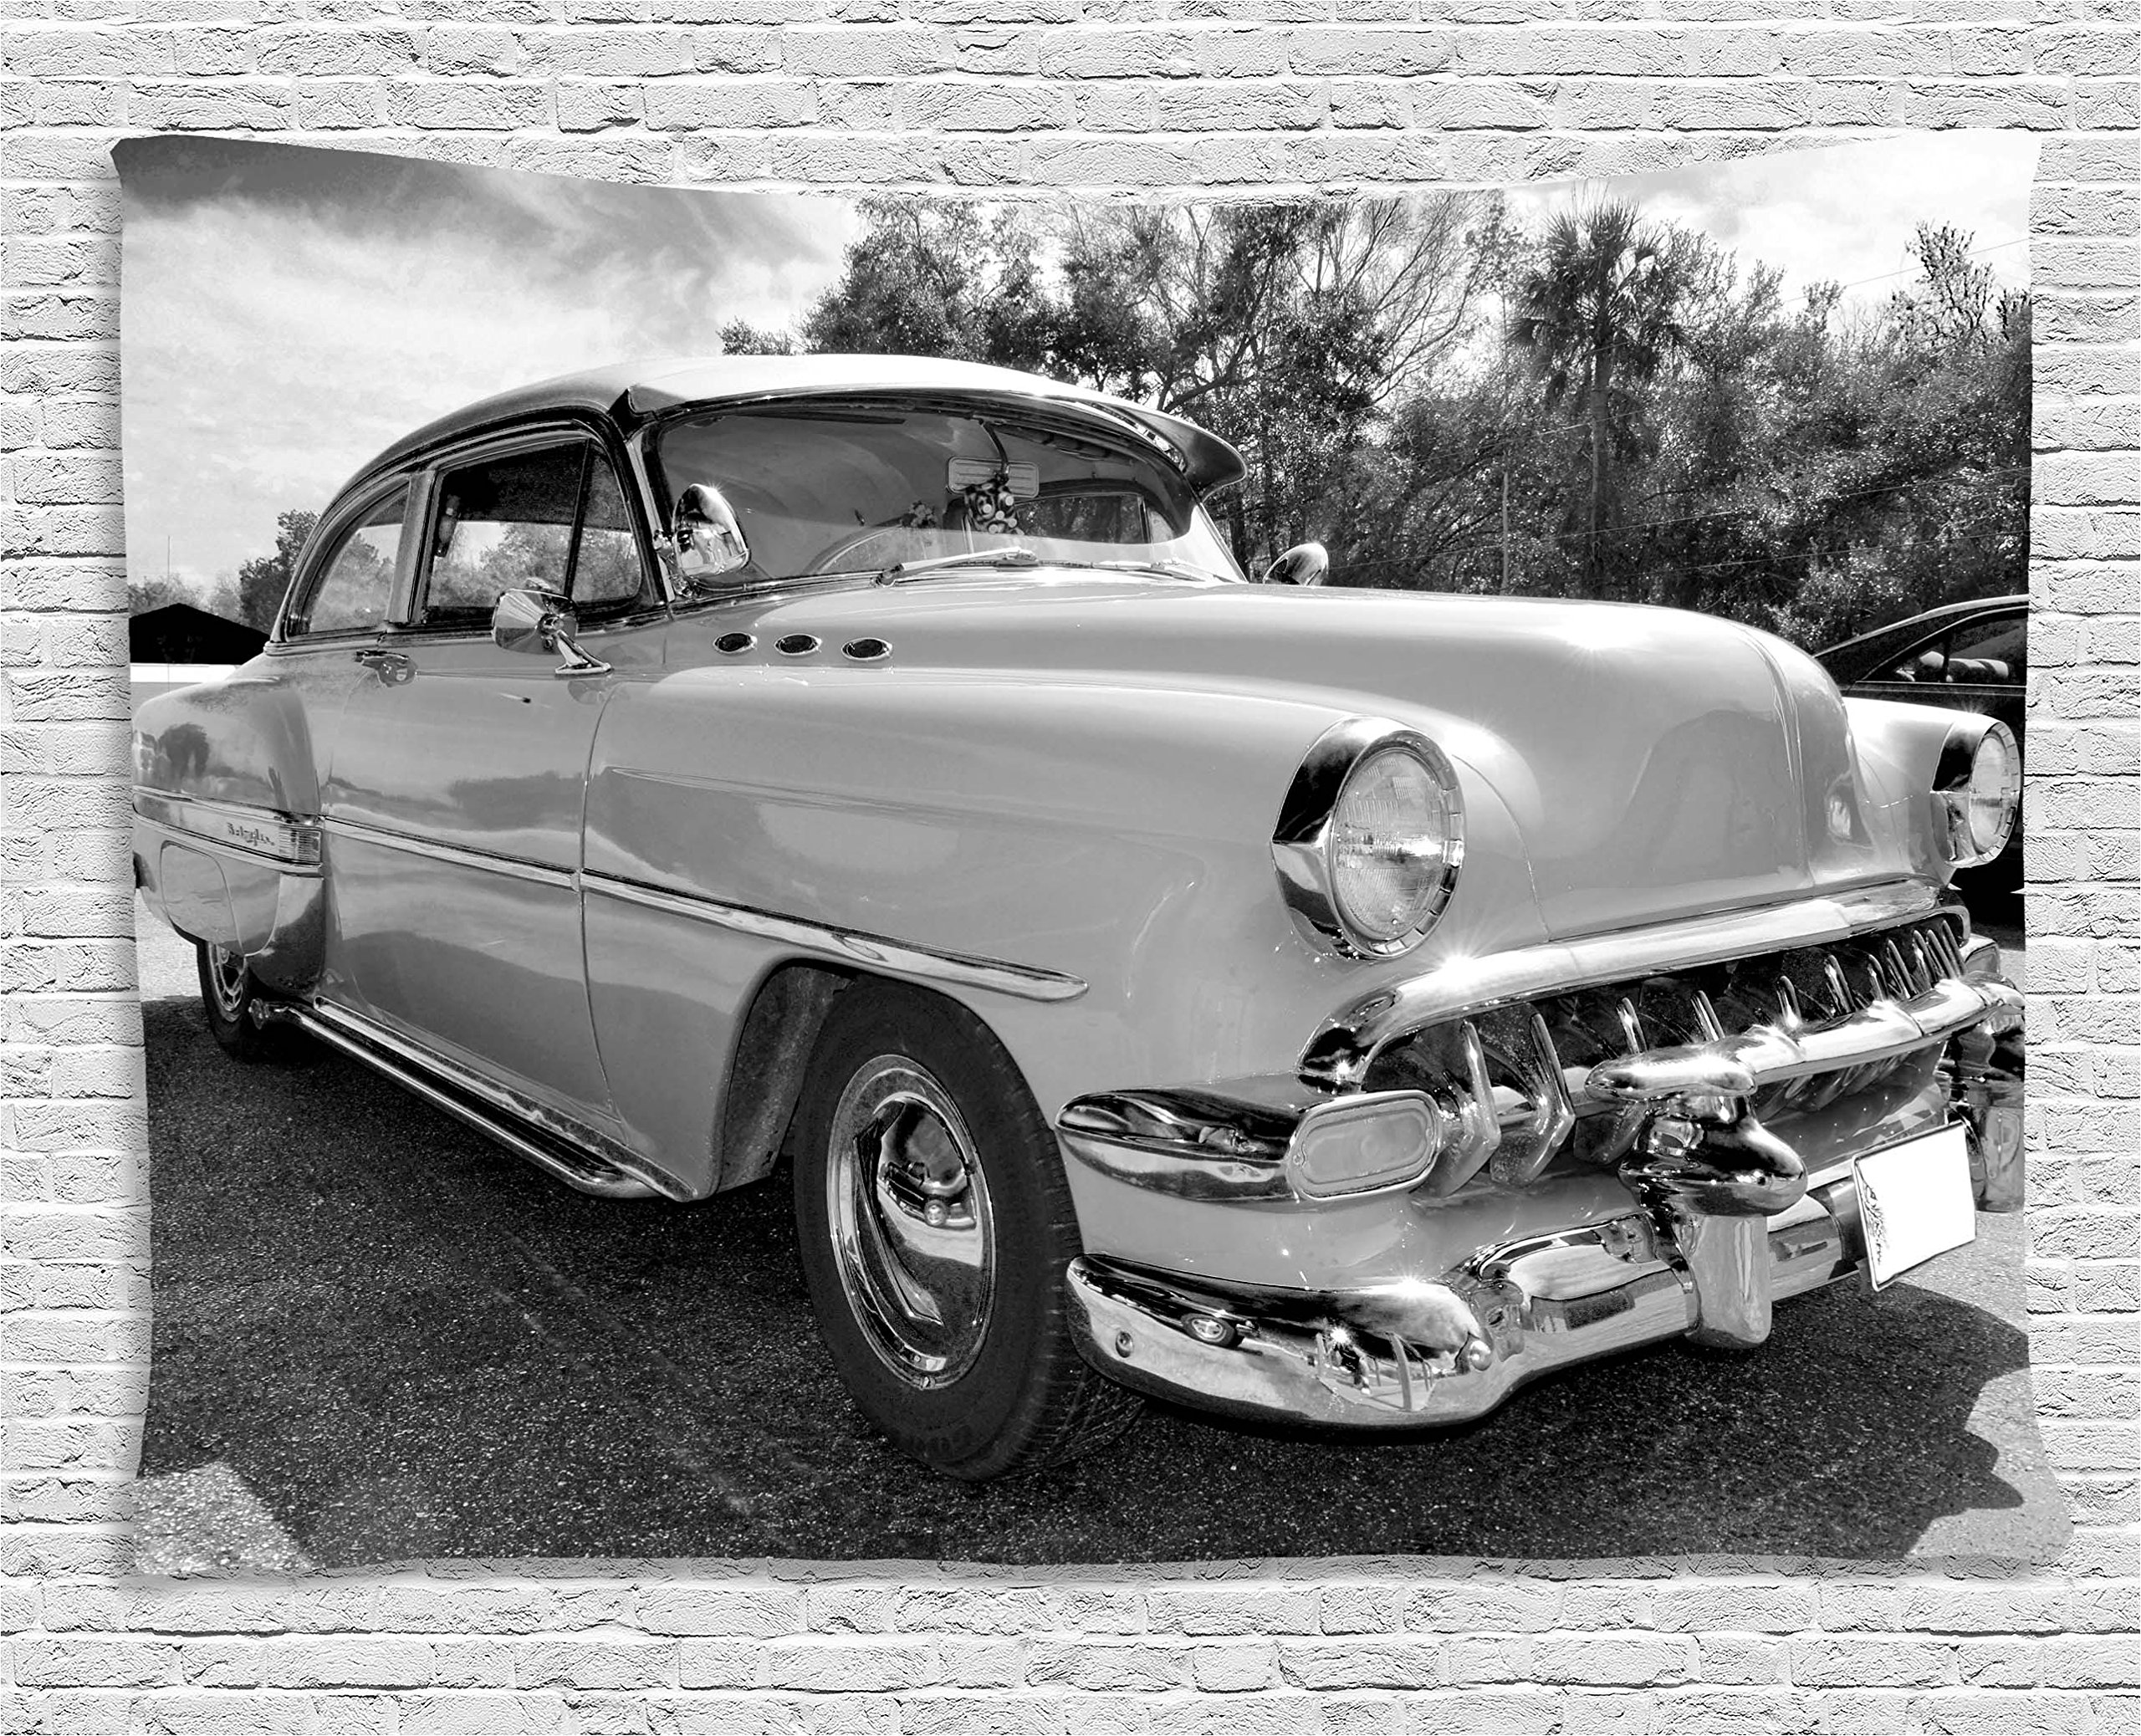 Ambesonne Vintage Tapestry, 50s 60s Retro Classic Pin up Style Cars in Hollywood Movies Image Artwork, Wall Hanging for Bedroom Living Room Dorm, 80WX60L inches, Black White and Gray